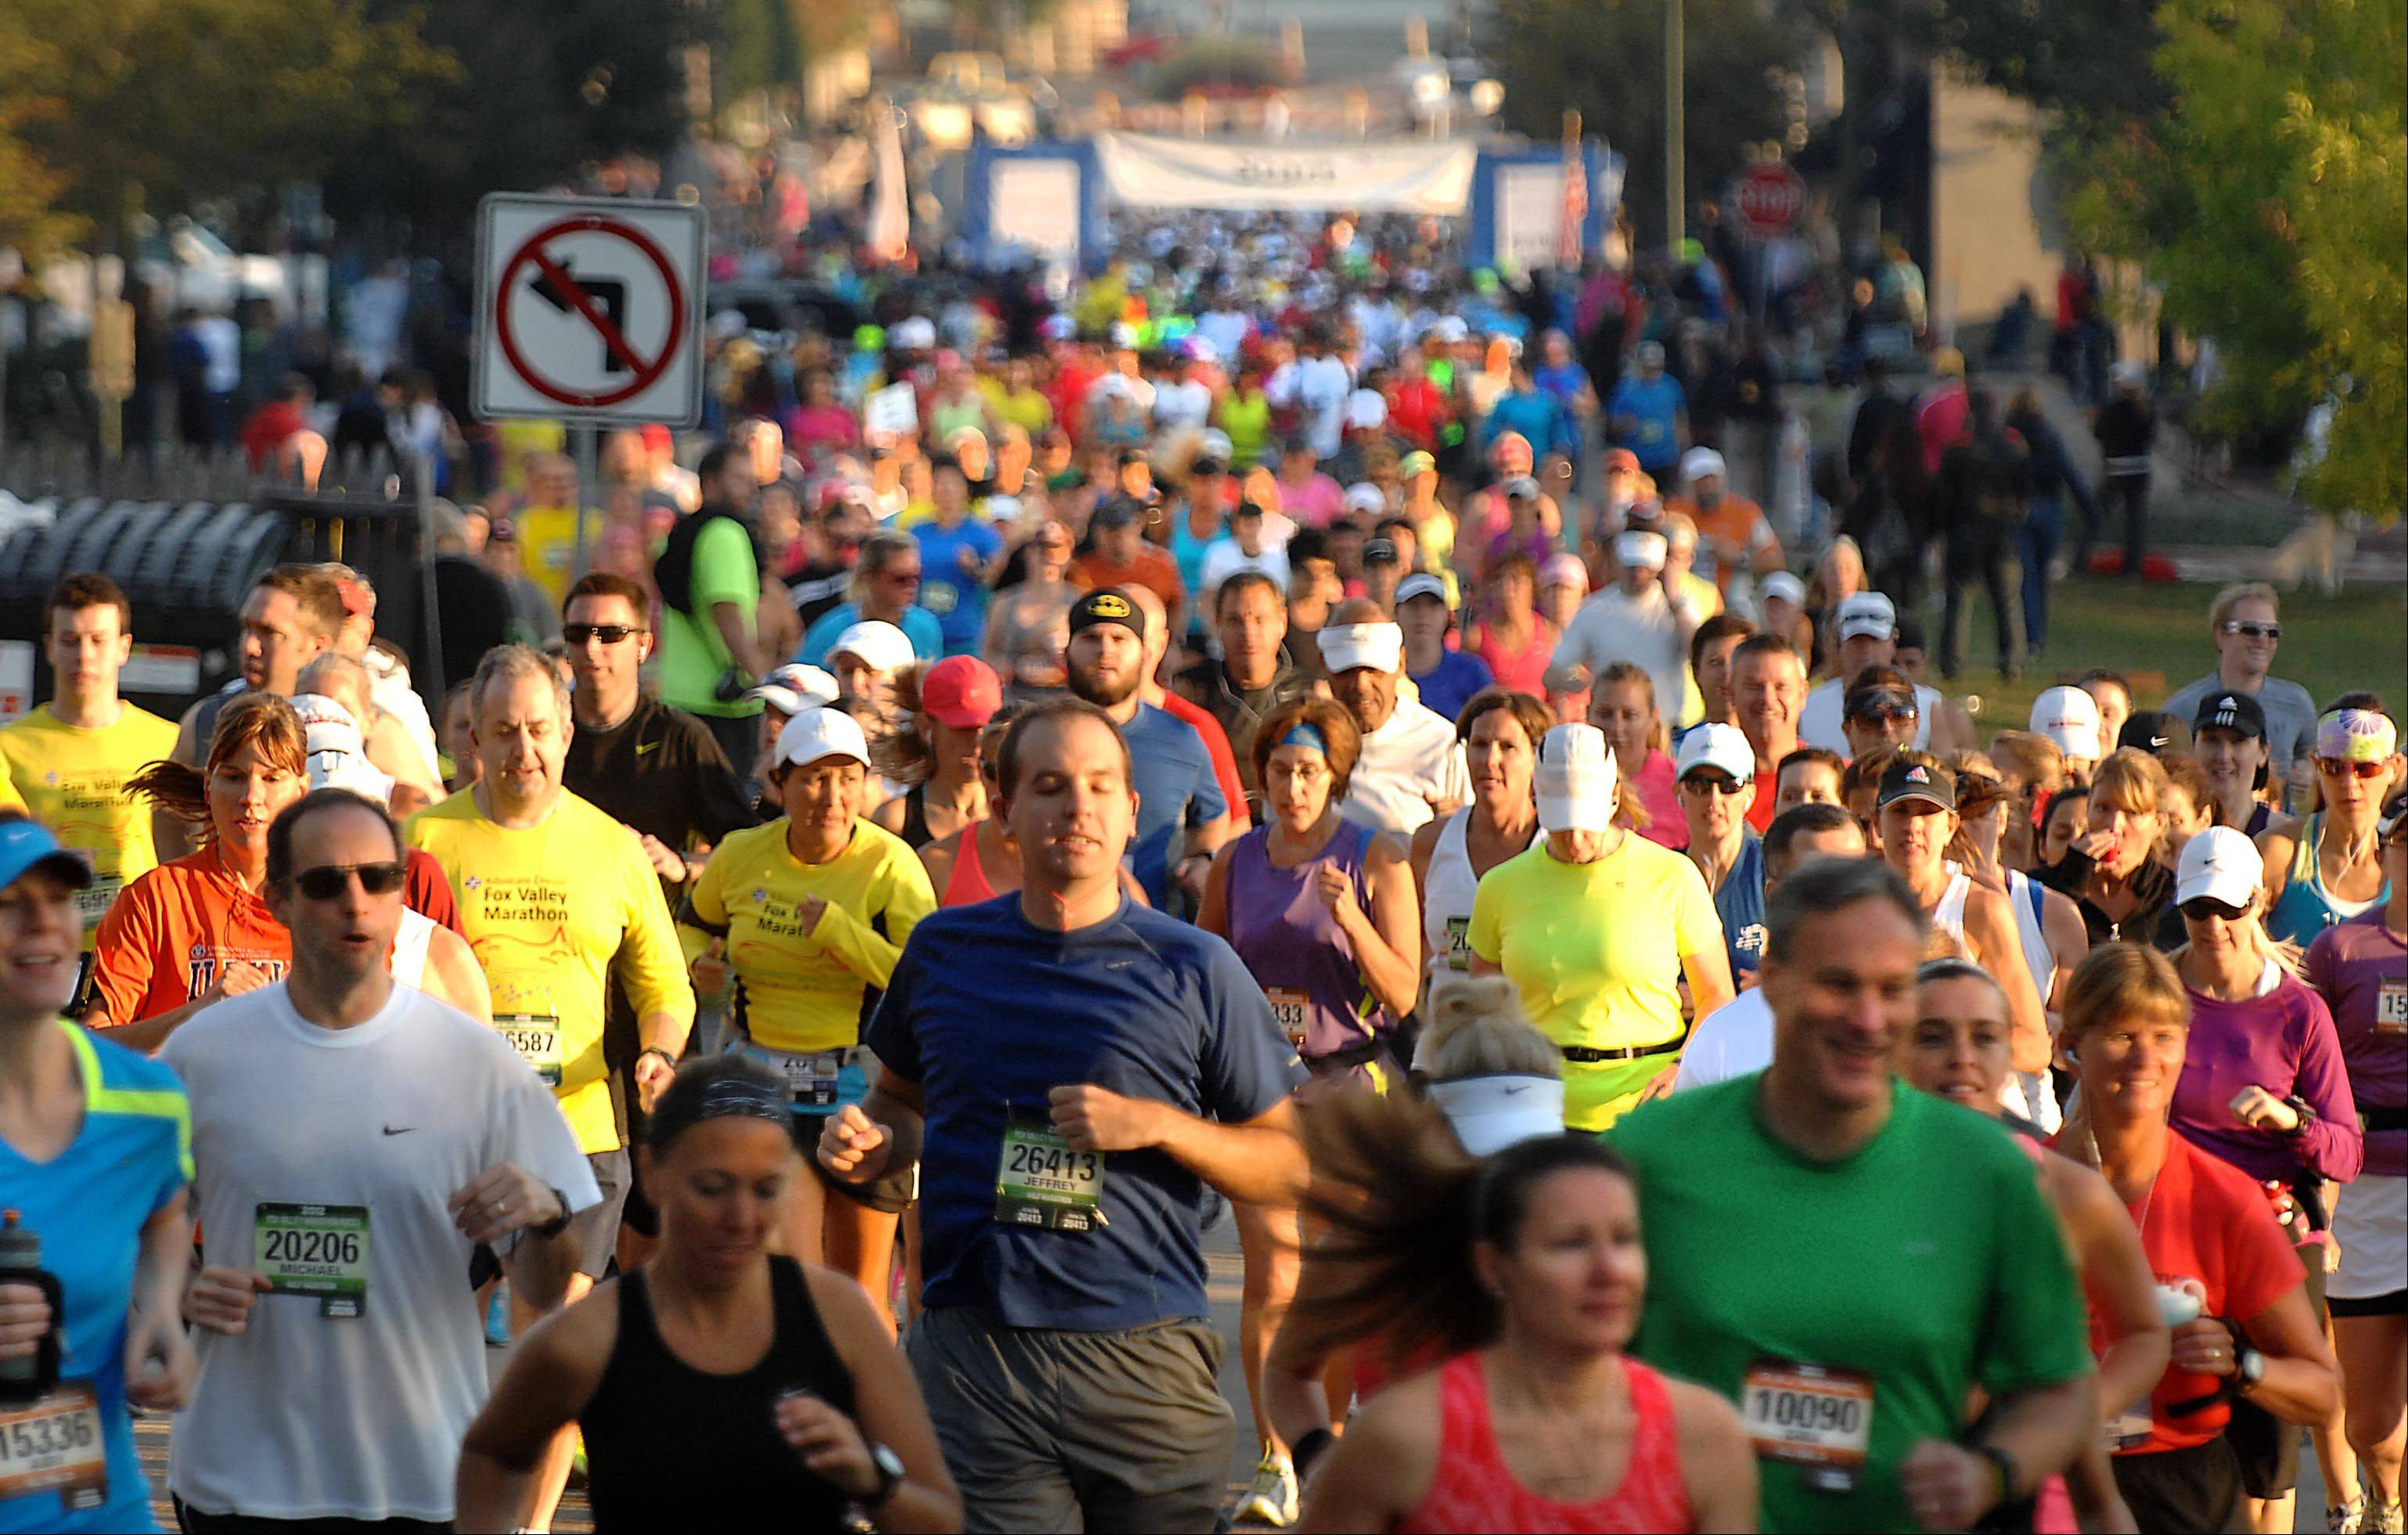 The inaugural Naperville Marathon and Half Marathon sold out in 14 hours Monday on the first and only day of online registration. The Nov. 10 races will feature 3,500 total competitors.